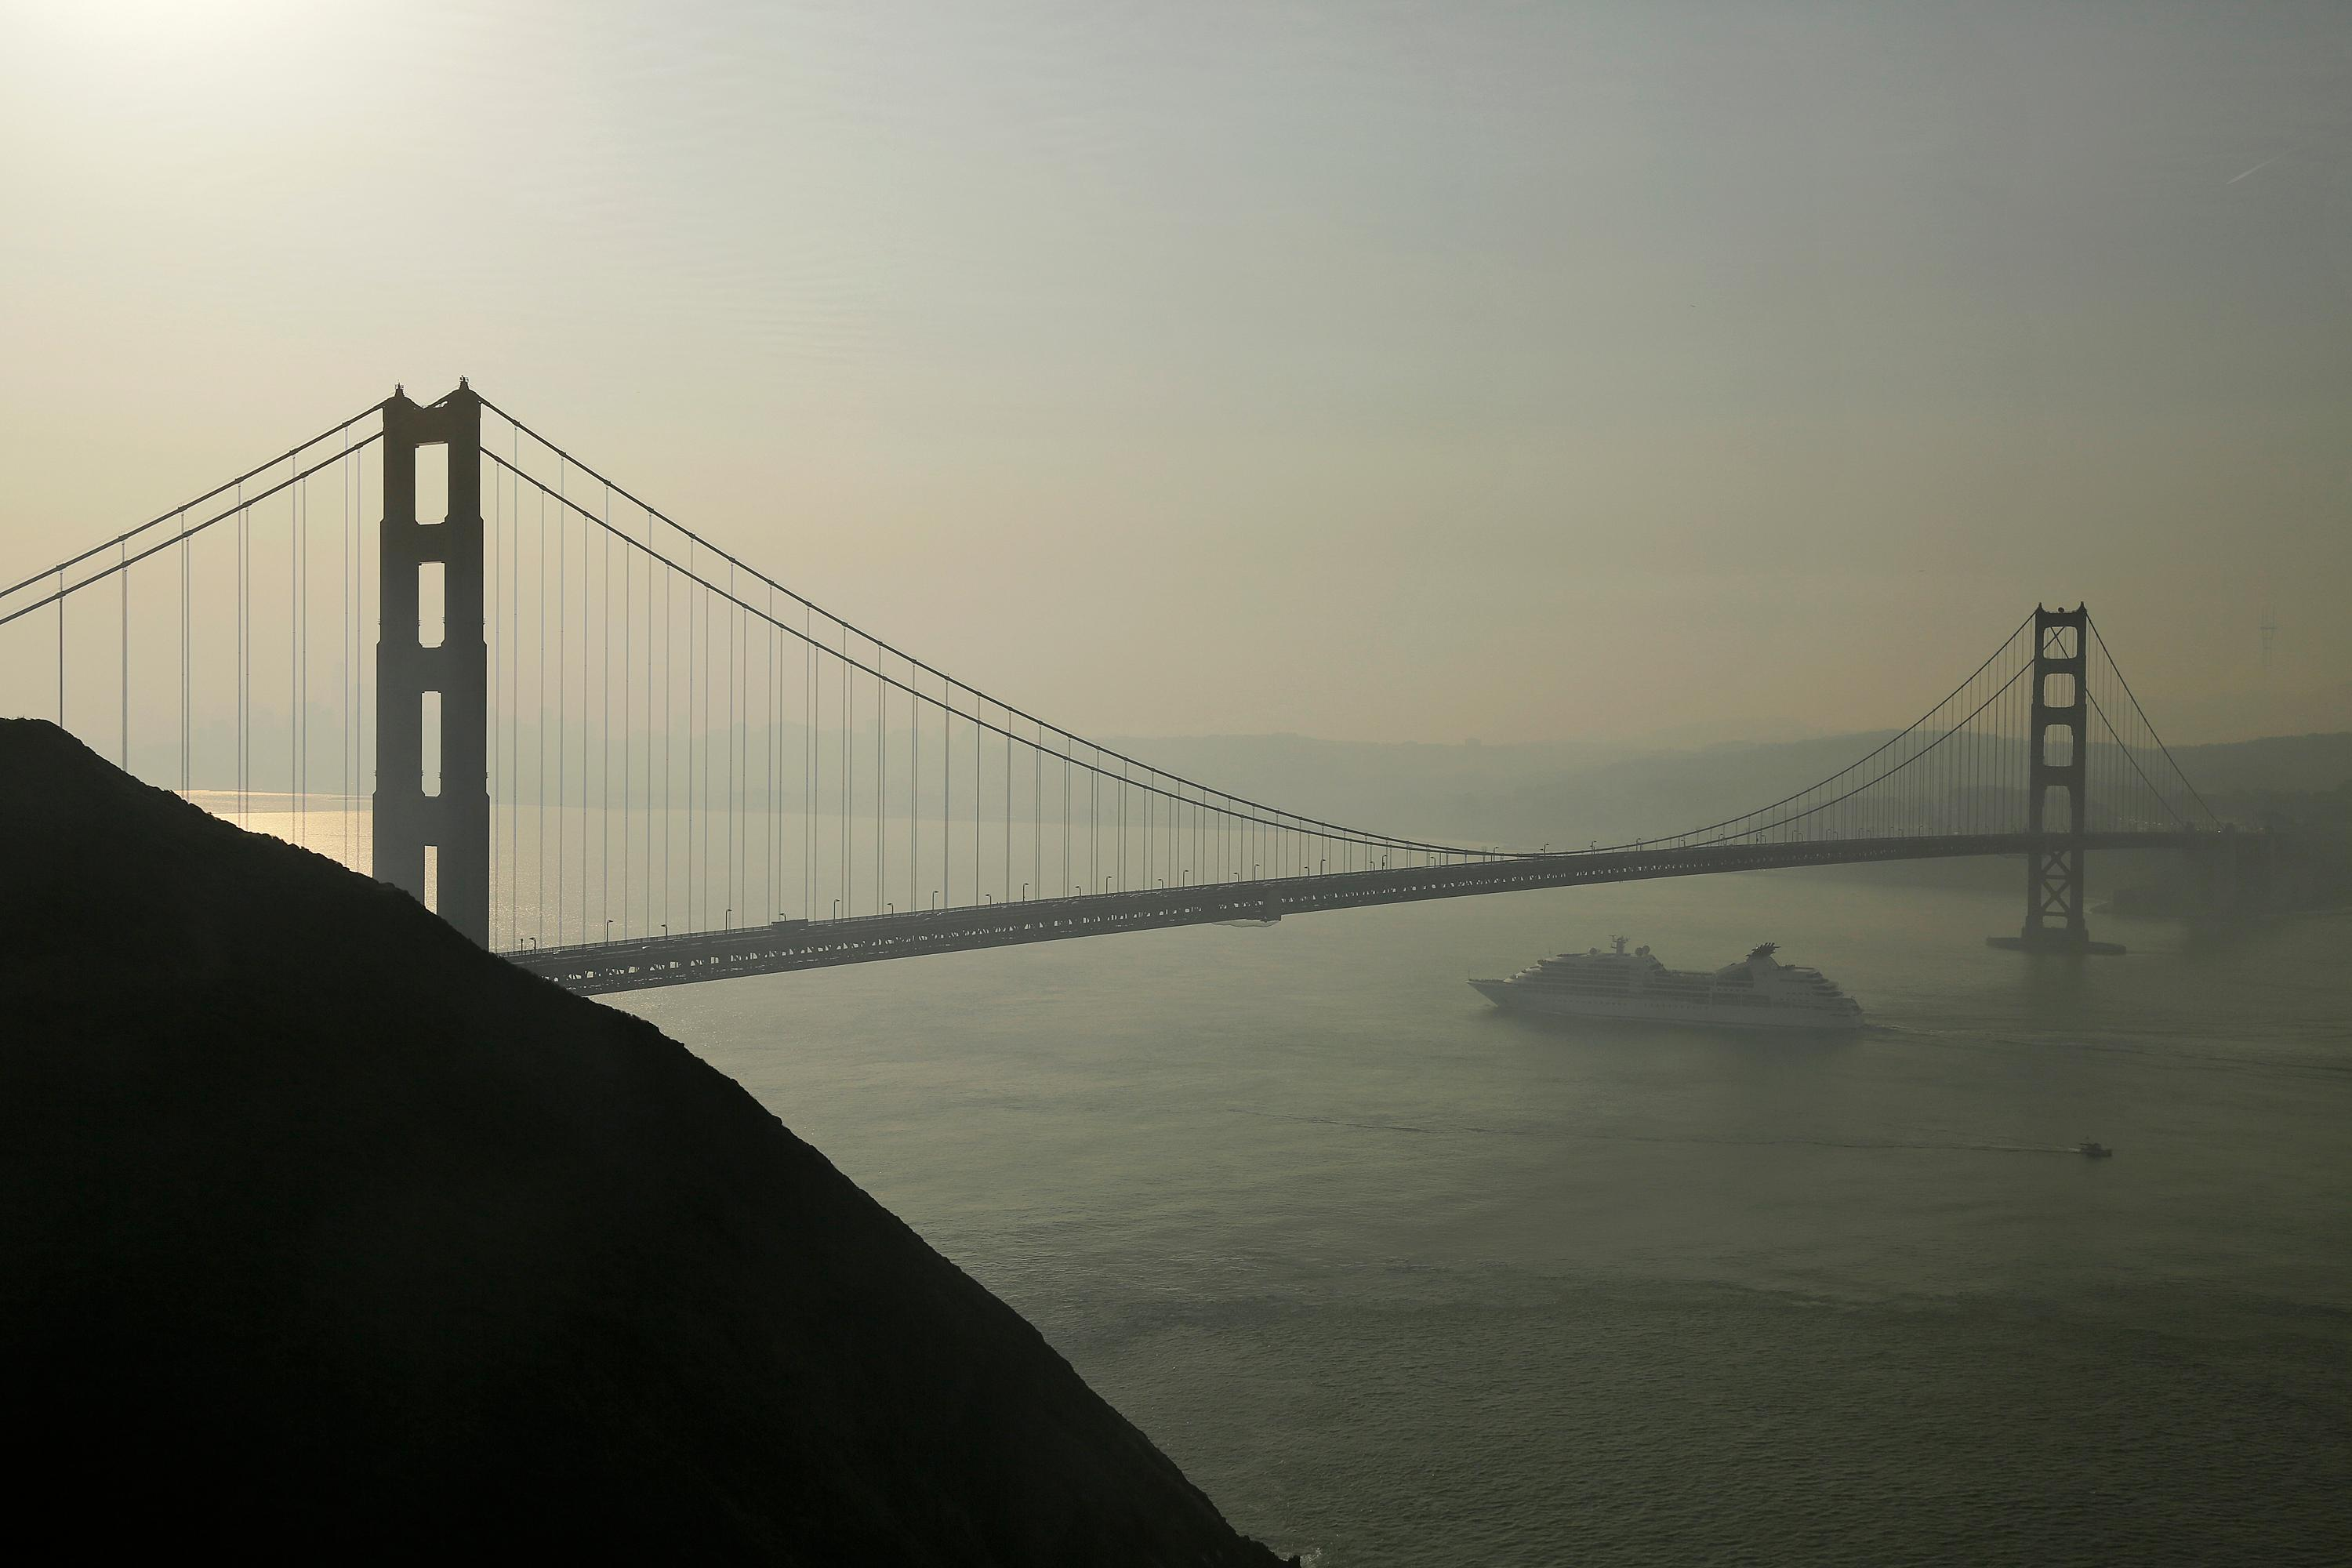 A cruise ship passes beneath the Golden Gate Bridge as smoke from wildfires blankets the San Francisco skyline Tuesday, Oct. 10, 2017, in this view near Sausalito, Calif. An onslaught of wildfires across a wide swath of Northern California broke out almost simultaneously then grew exponentially, swallowing up properties from wineries to trailer parks and tearing through both tiny rural towns and urban subdivisions. (AP Photo/Eric Risberg)